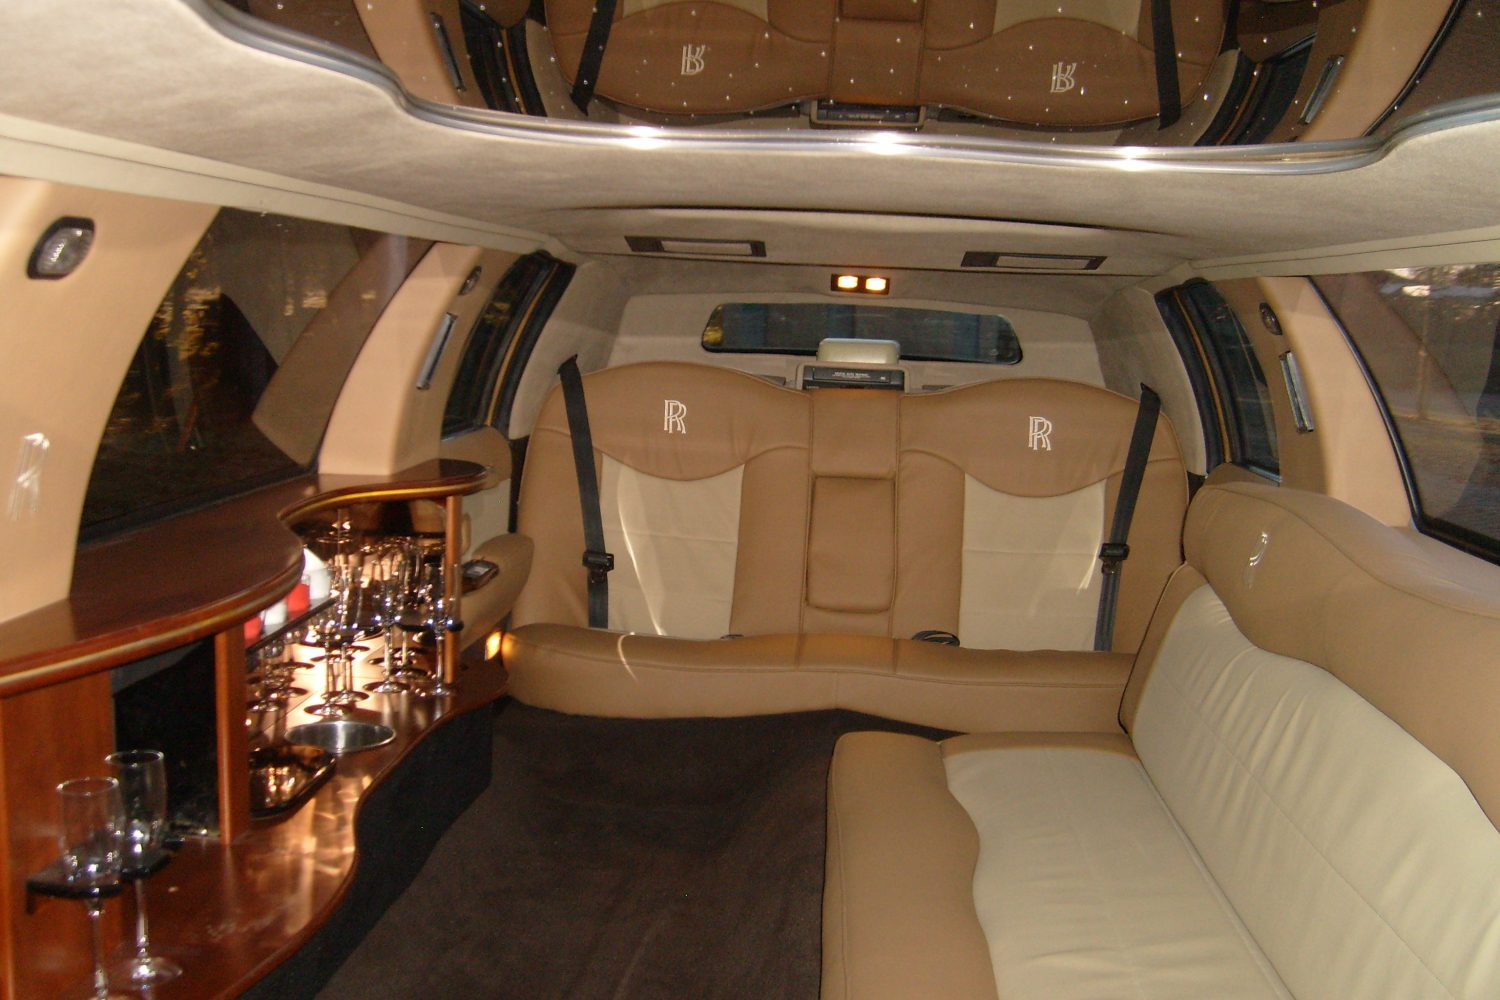 Inside At Porto Limousine